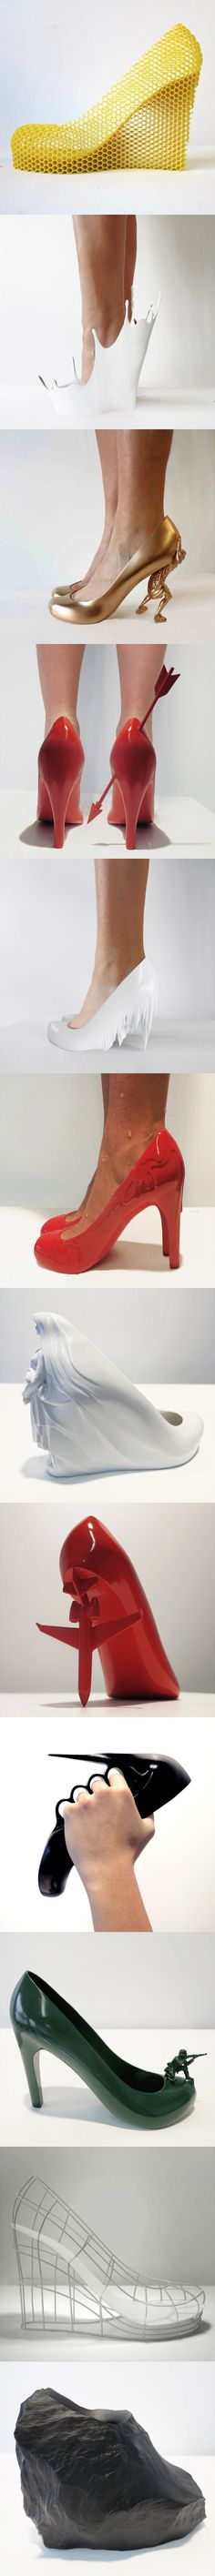 12 Shoes for 12 Lovers, by Sebastian Errazuriz